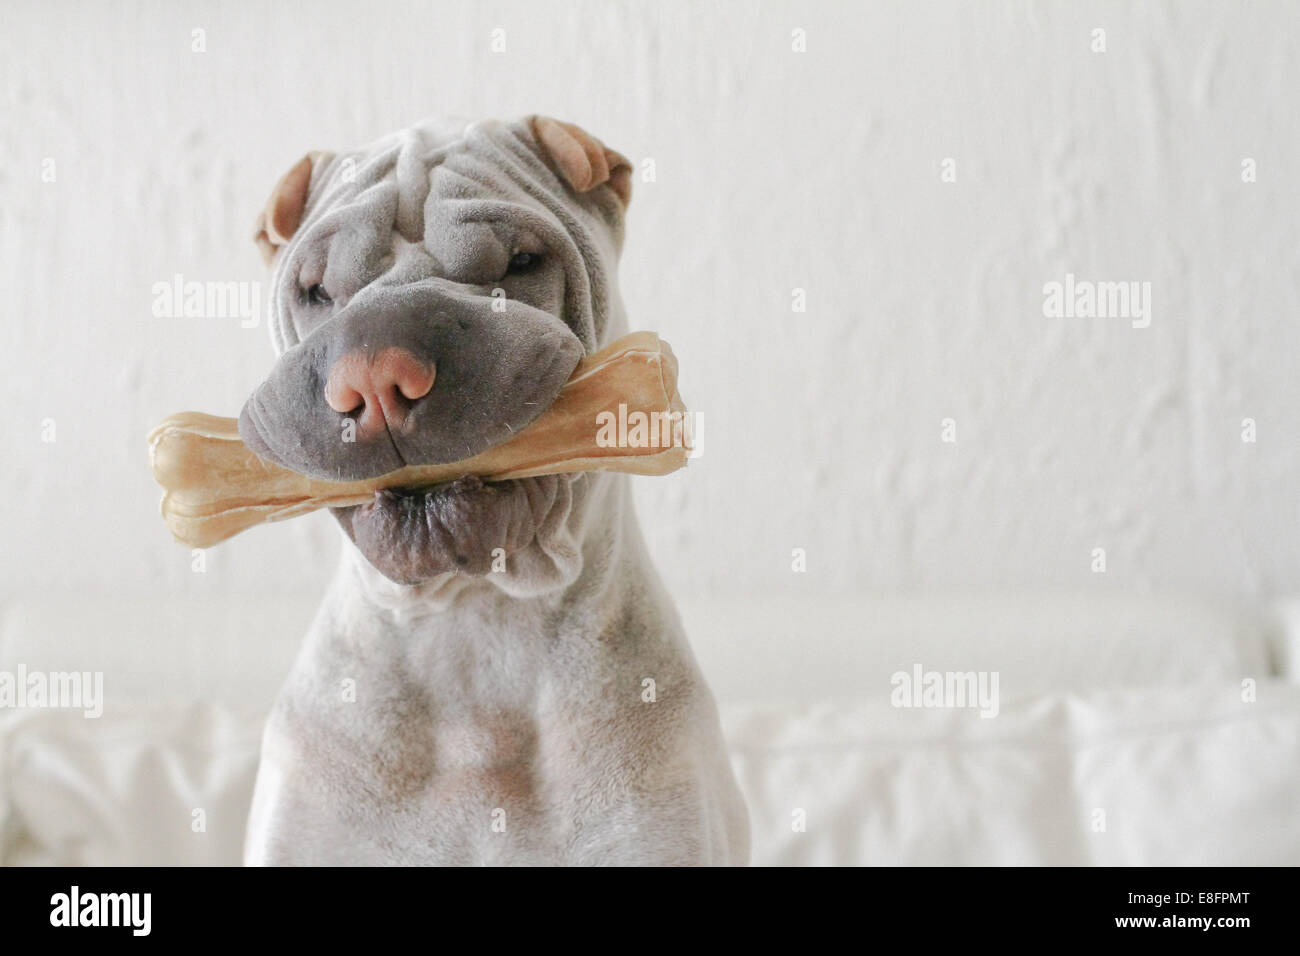 Shar-pei biting bone - Stock Image